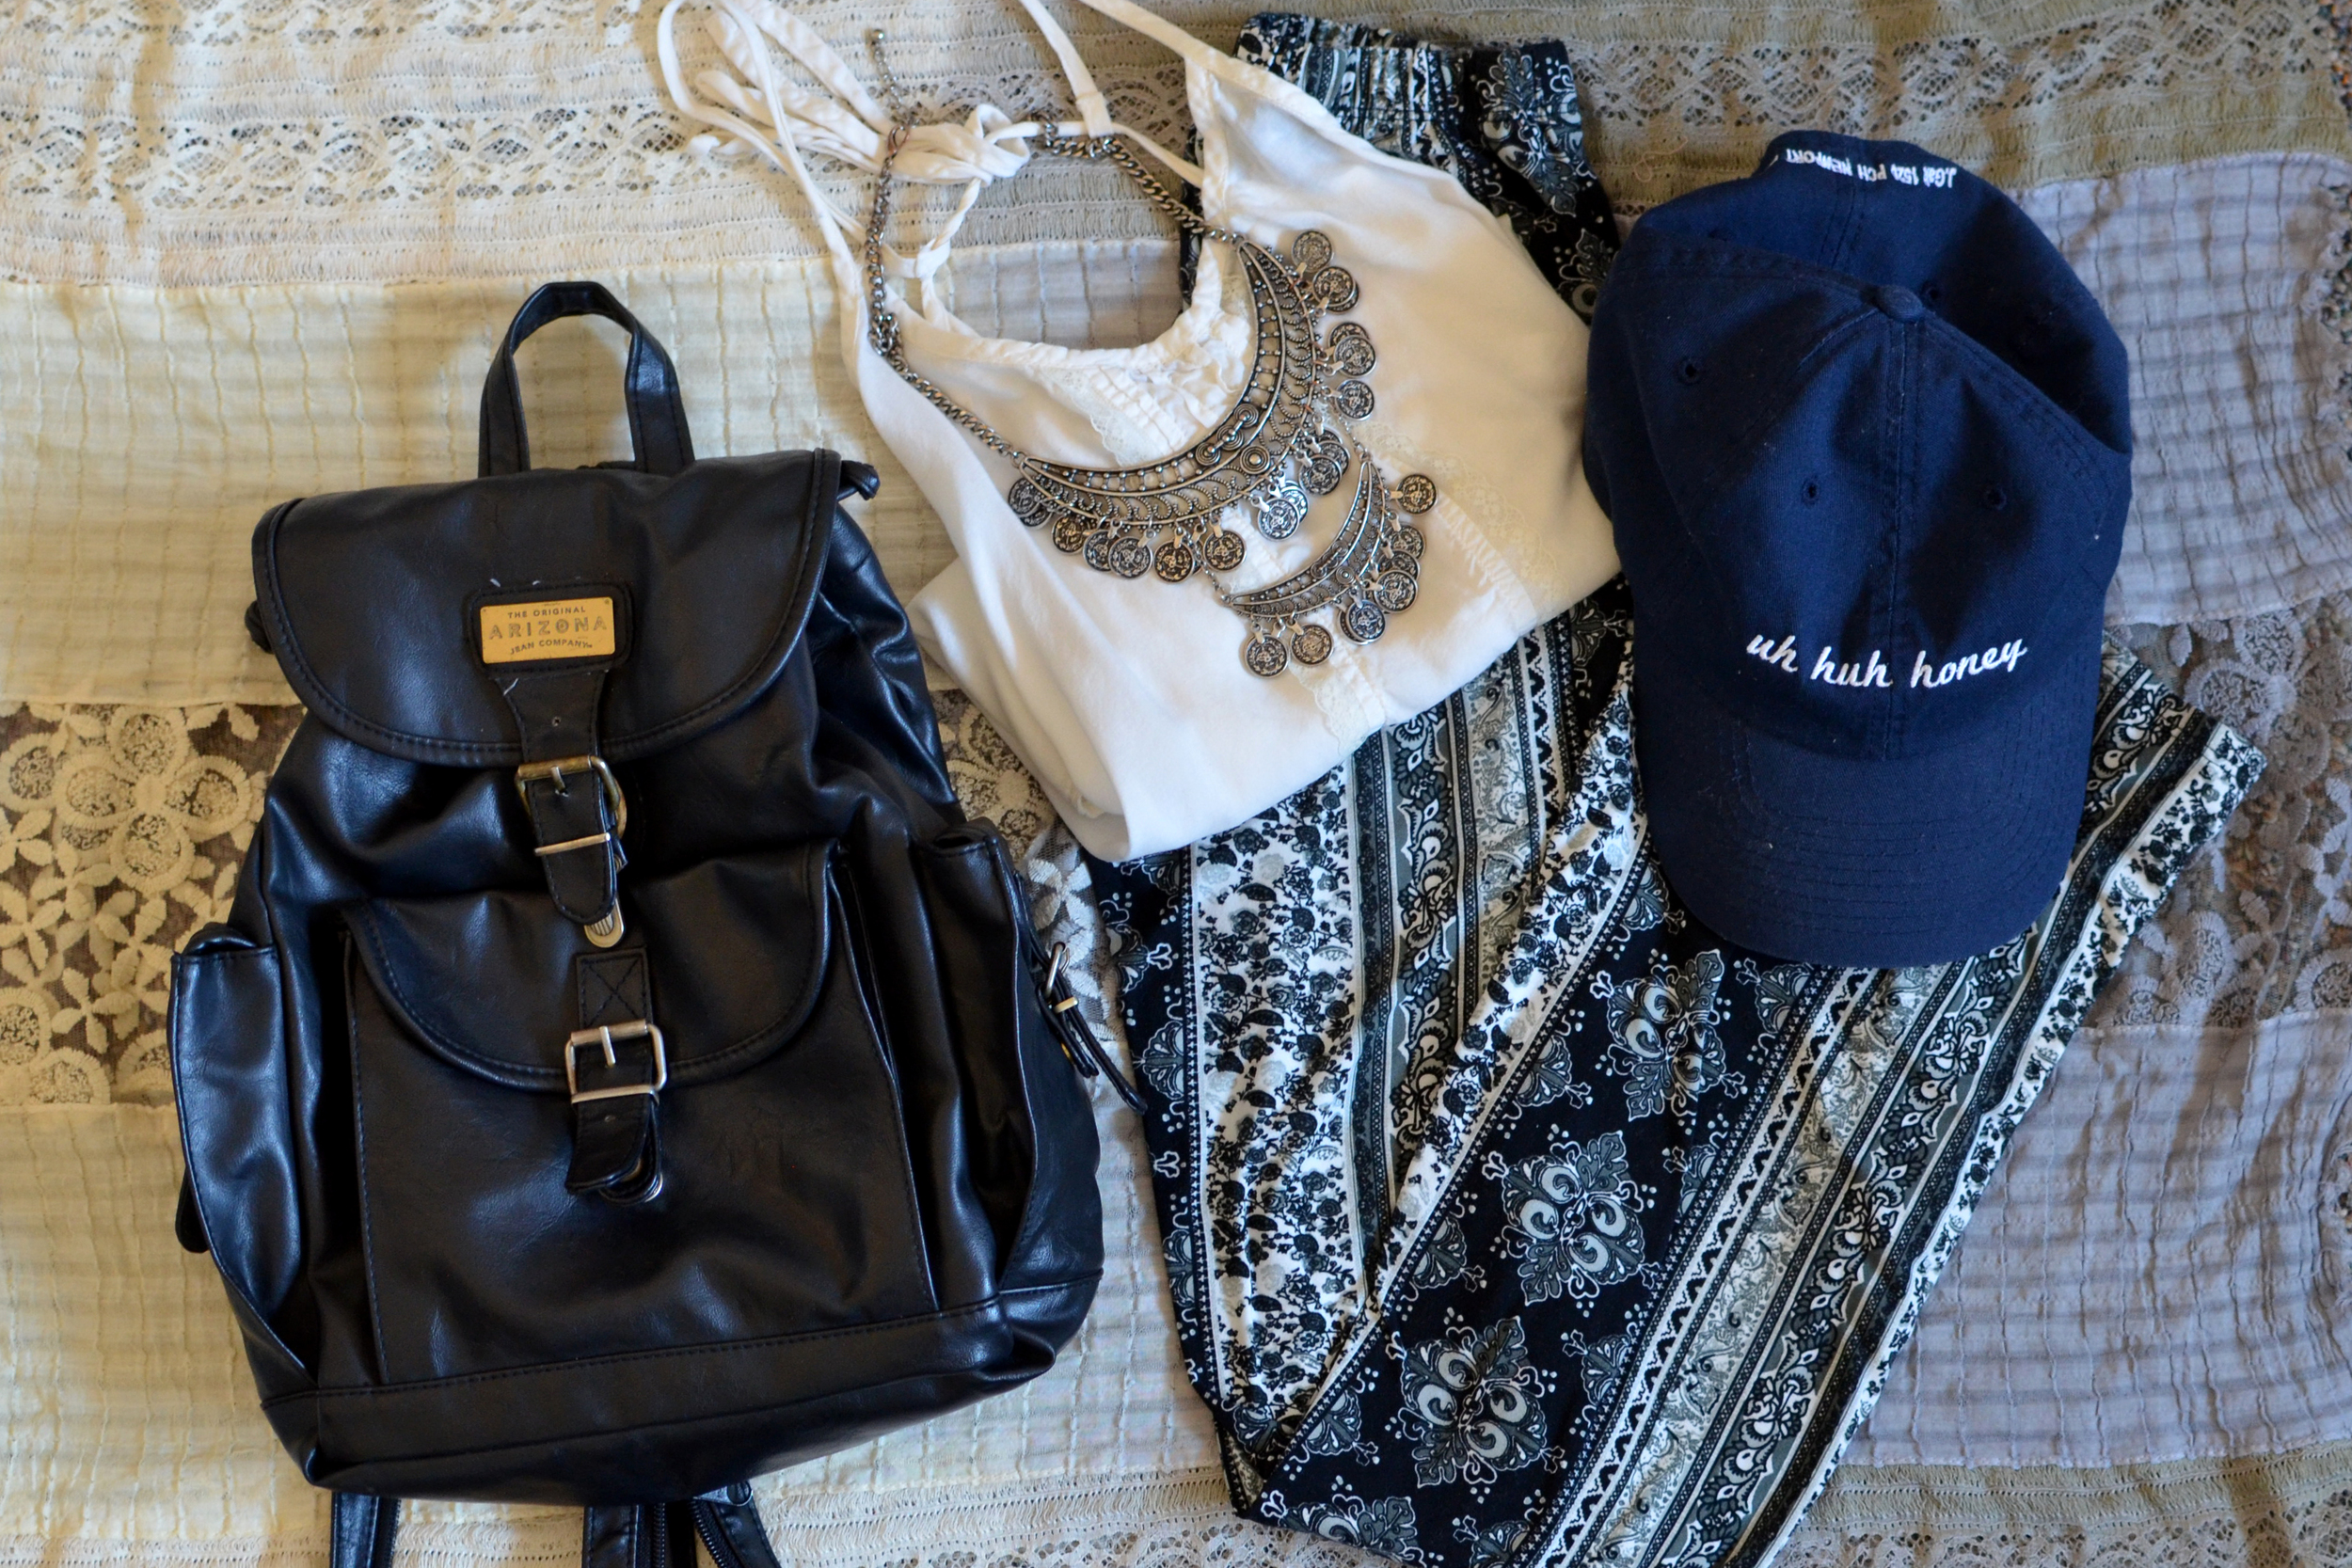 Backpack/ Goodwill, Pants/Ebay, Top/Free people, Hat/Johngalt